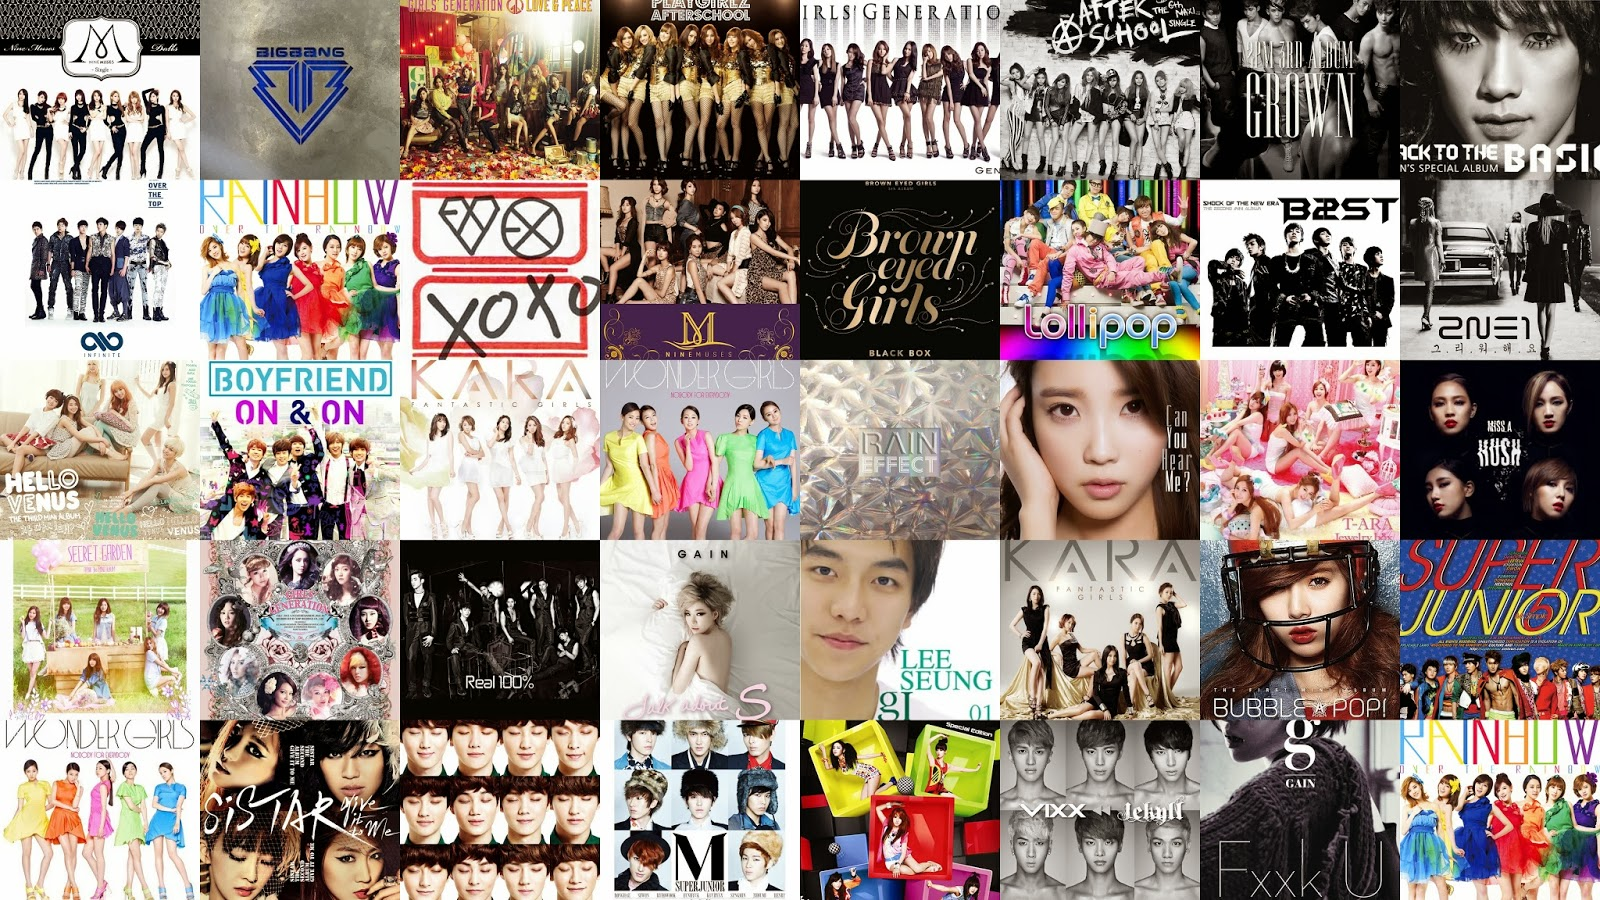 QUIZ: Can You Match These K-Pop Album Covers To The Artists? | Soompi